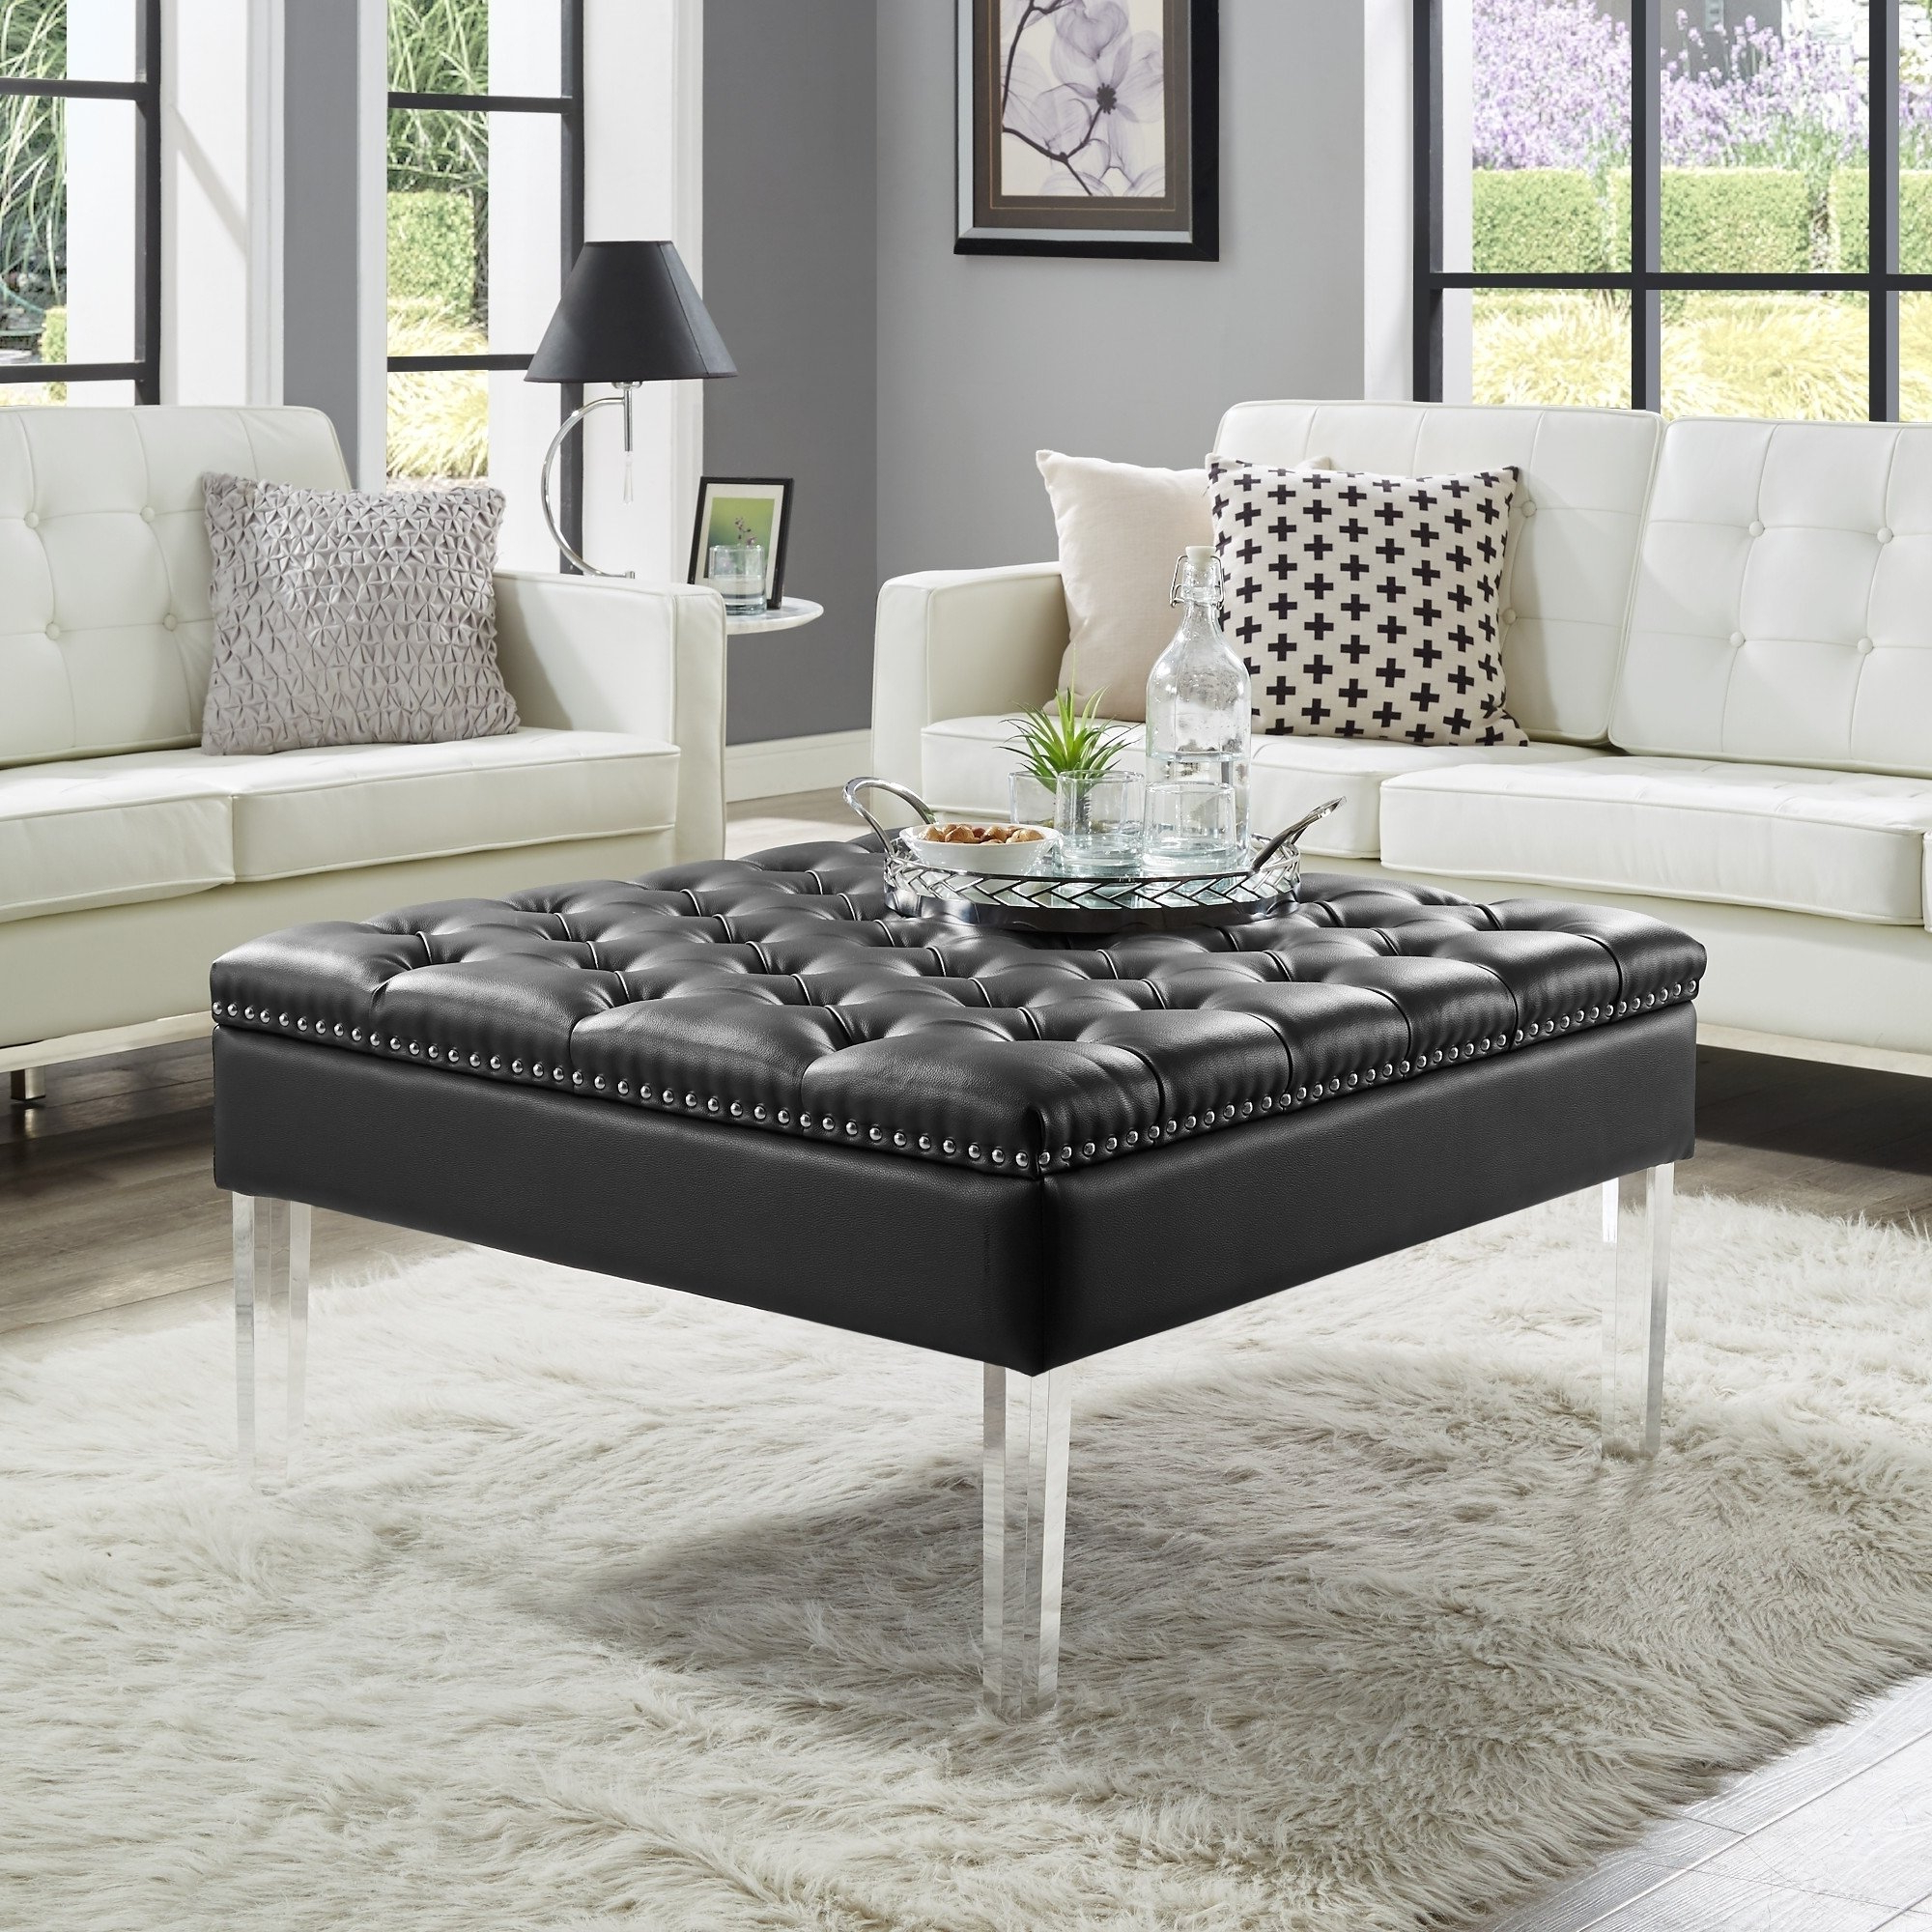 Most Recent Button Tufted Coffee Tables Within Shop Vivian Leather Oversized Button Tufted Ottoman Coffee Table (View 11 of 20)